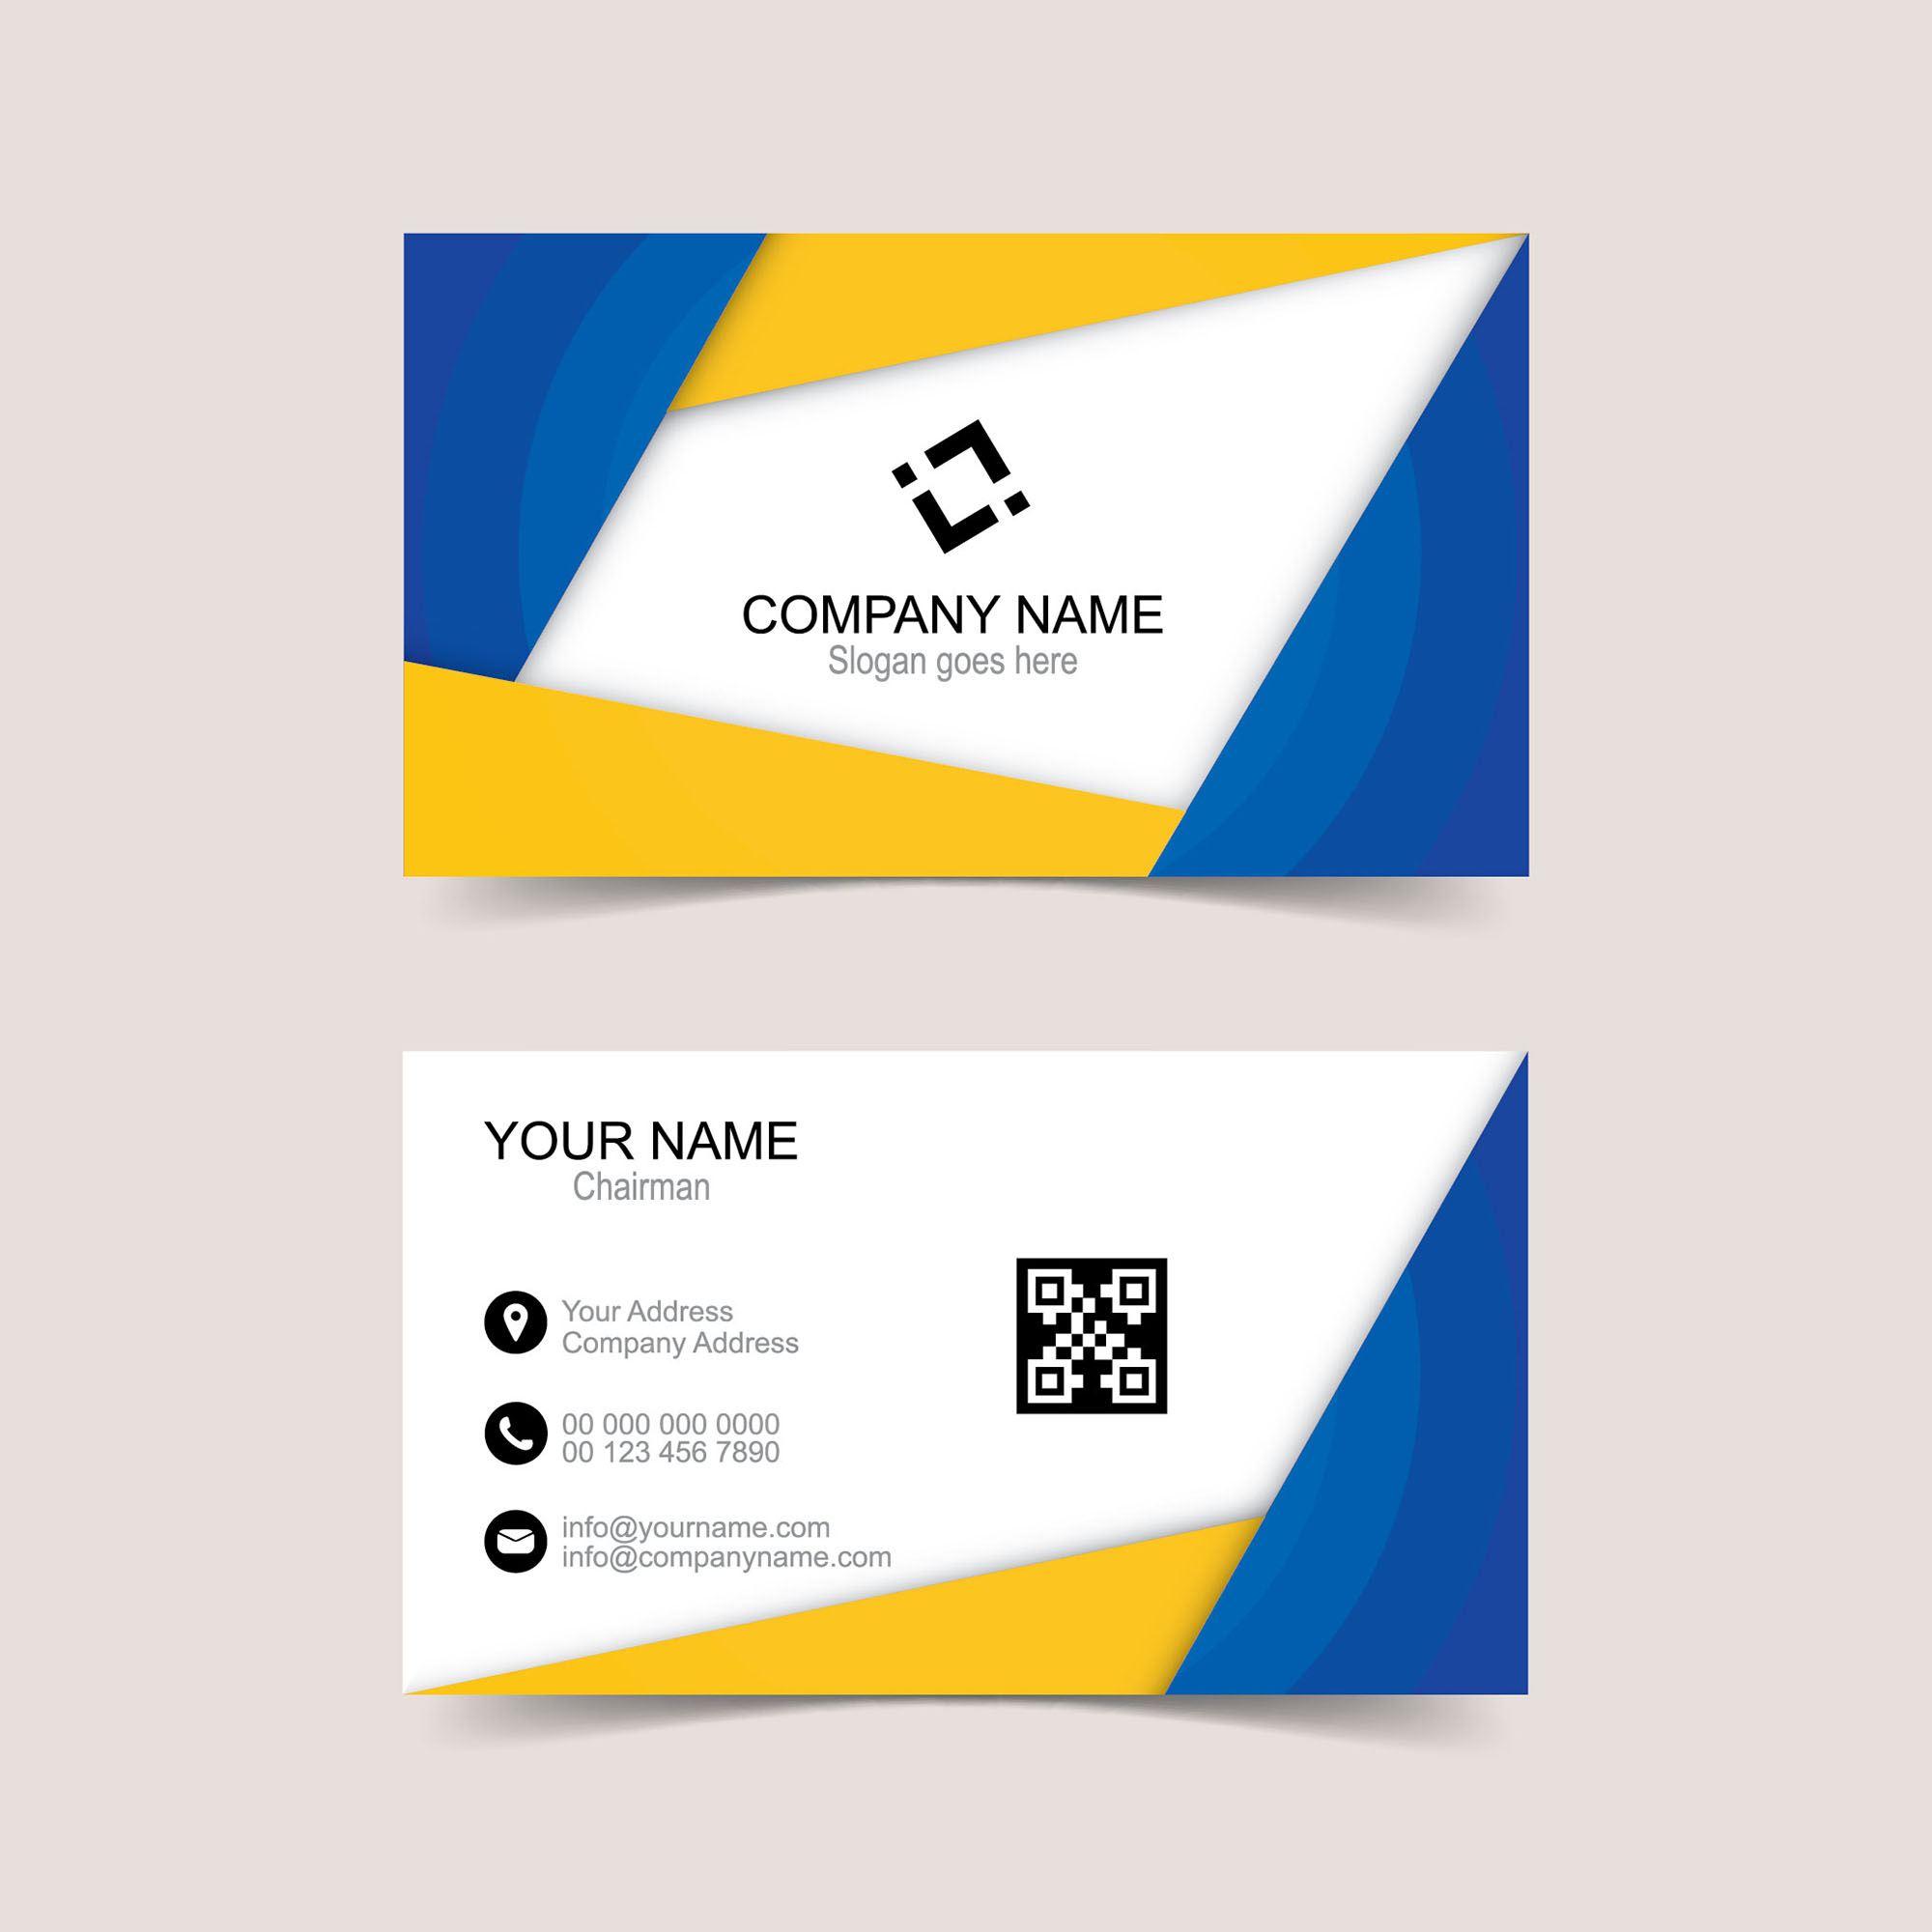 Vector creative business card template free download wisxi business card business cards business card design business card template design templates cheaphphosting Image collections